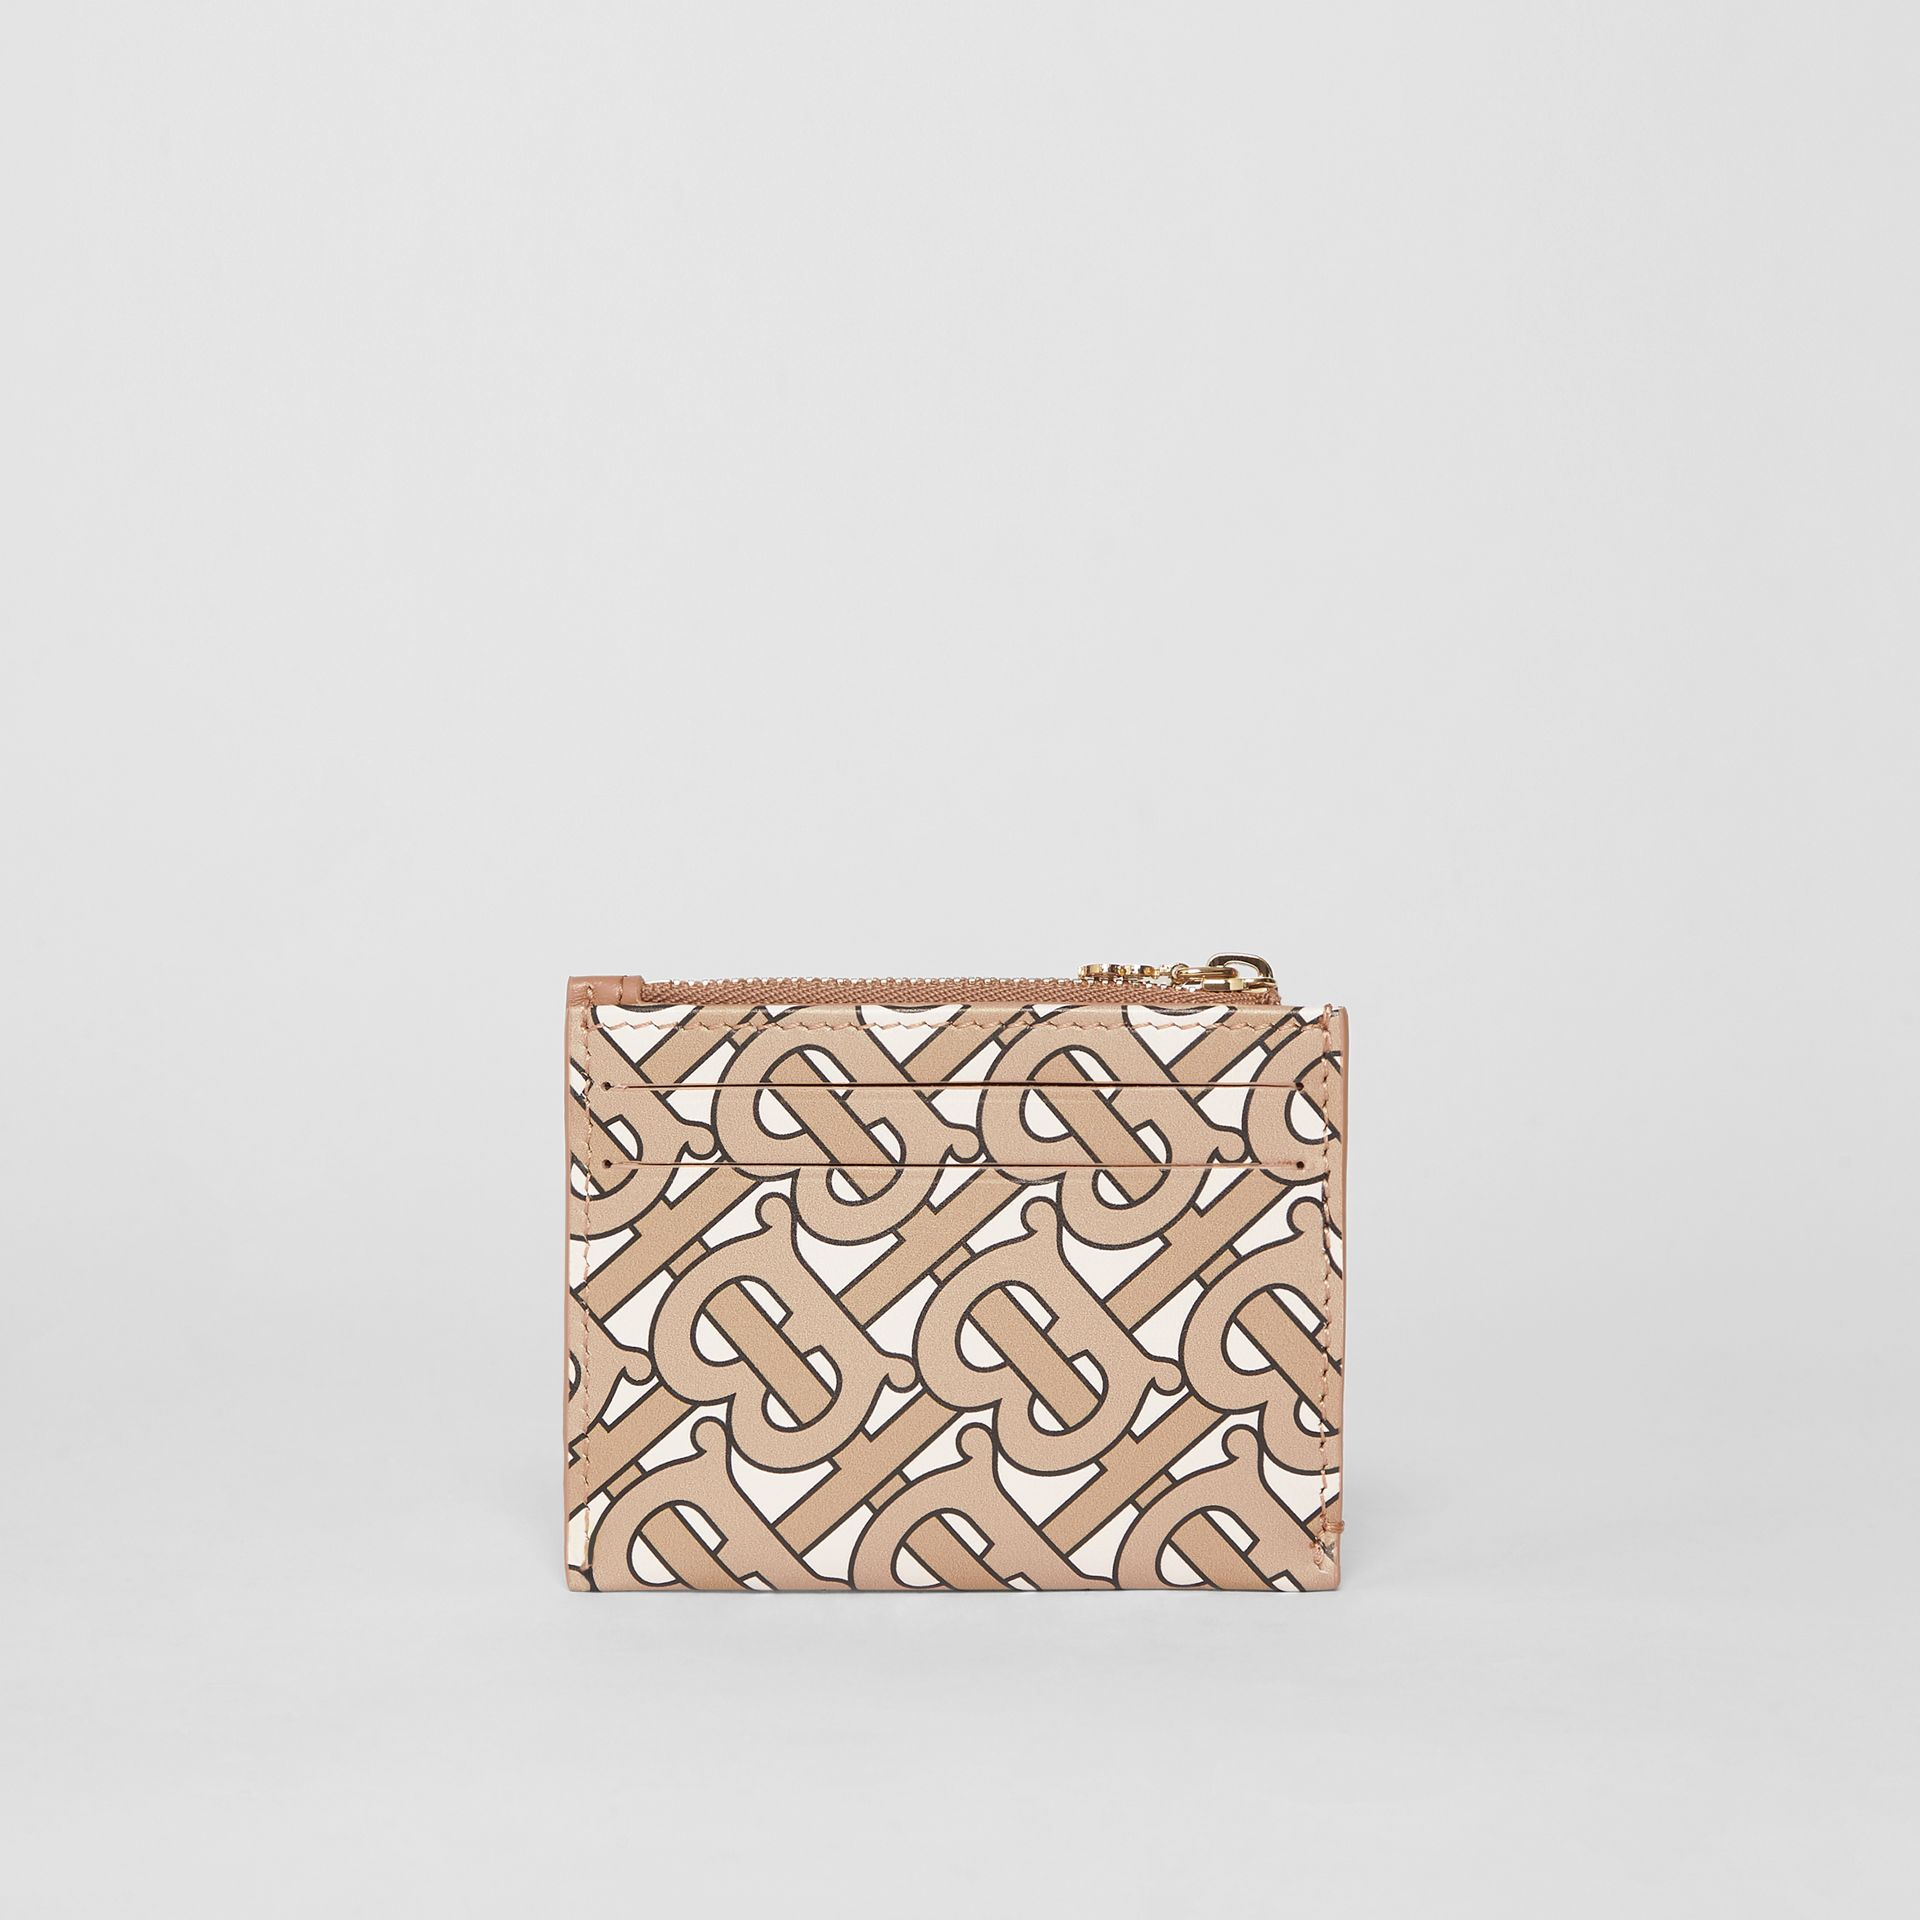 Monogram Print Leather Zip Card Case in Beige - Women | Burberry United Kingdom - gallery image 4